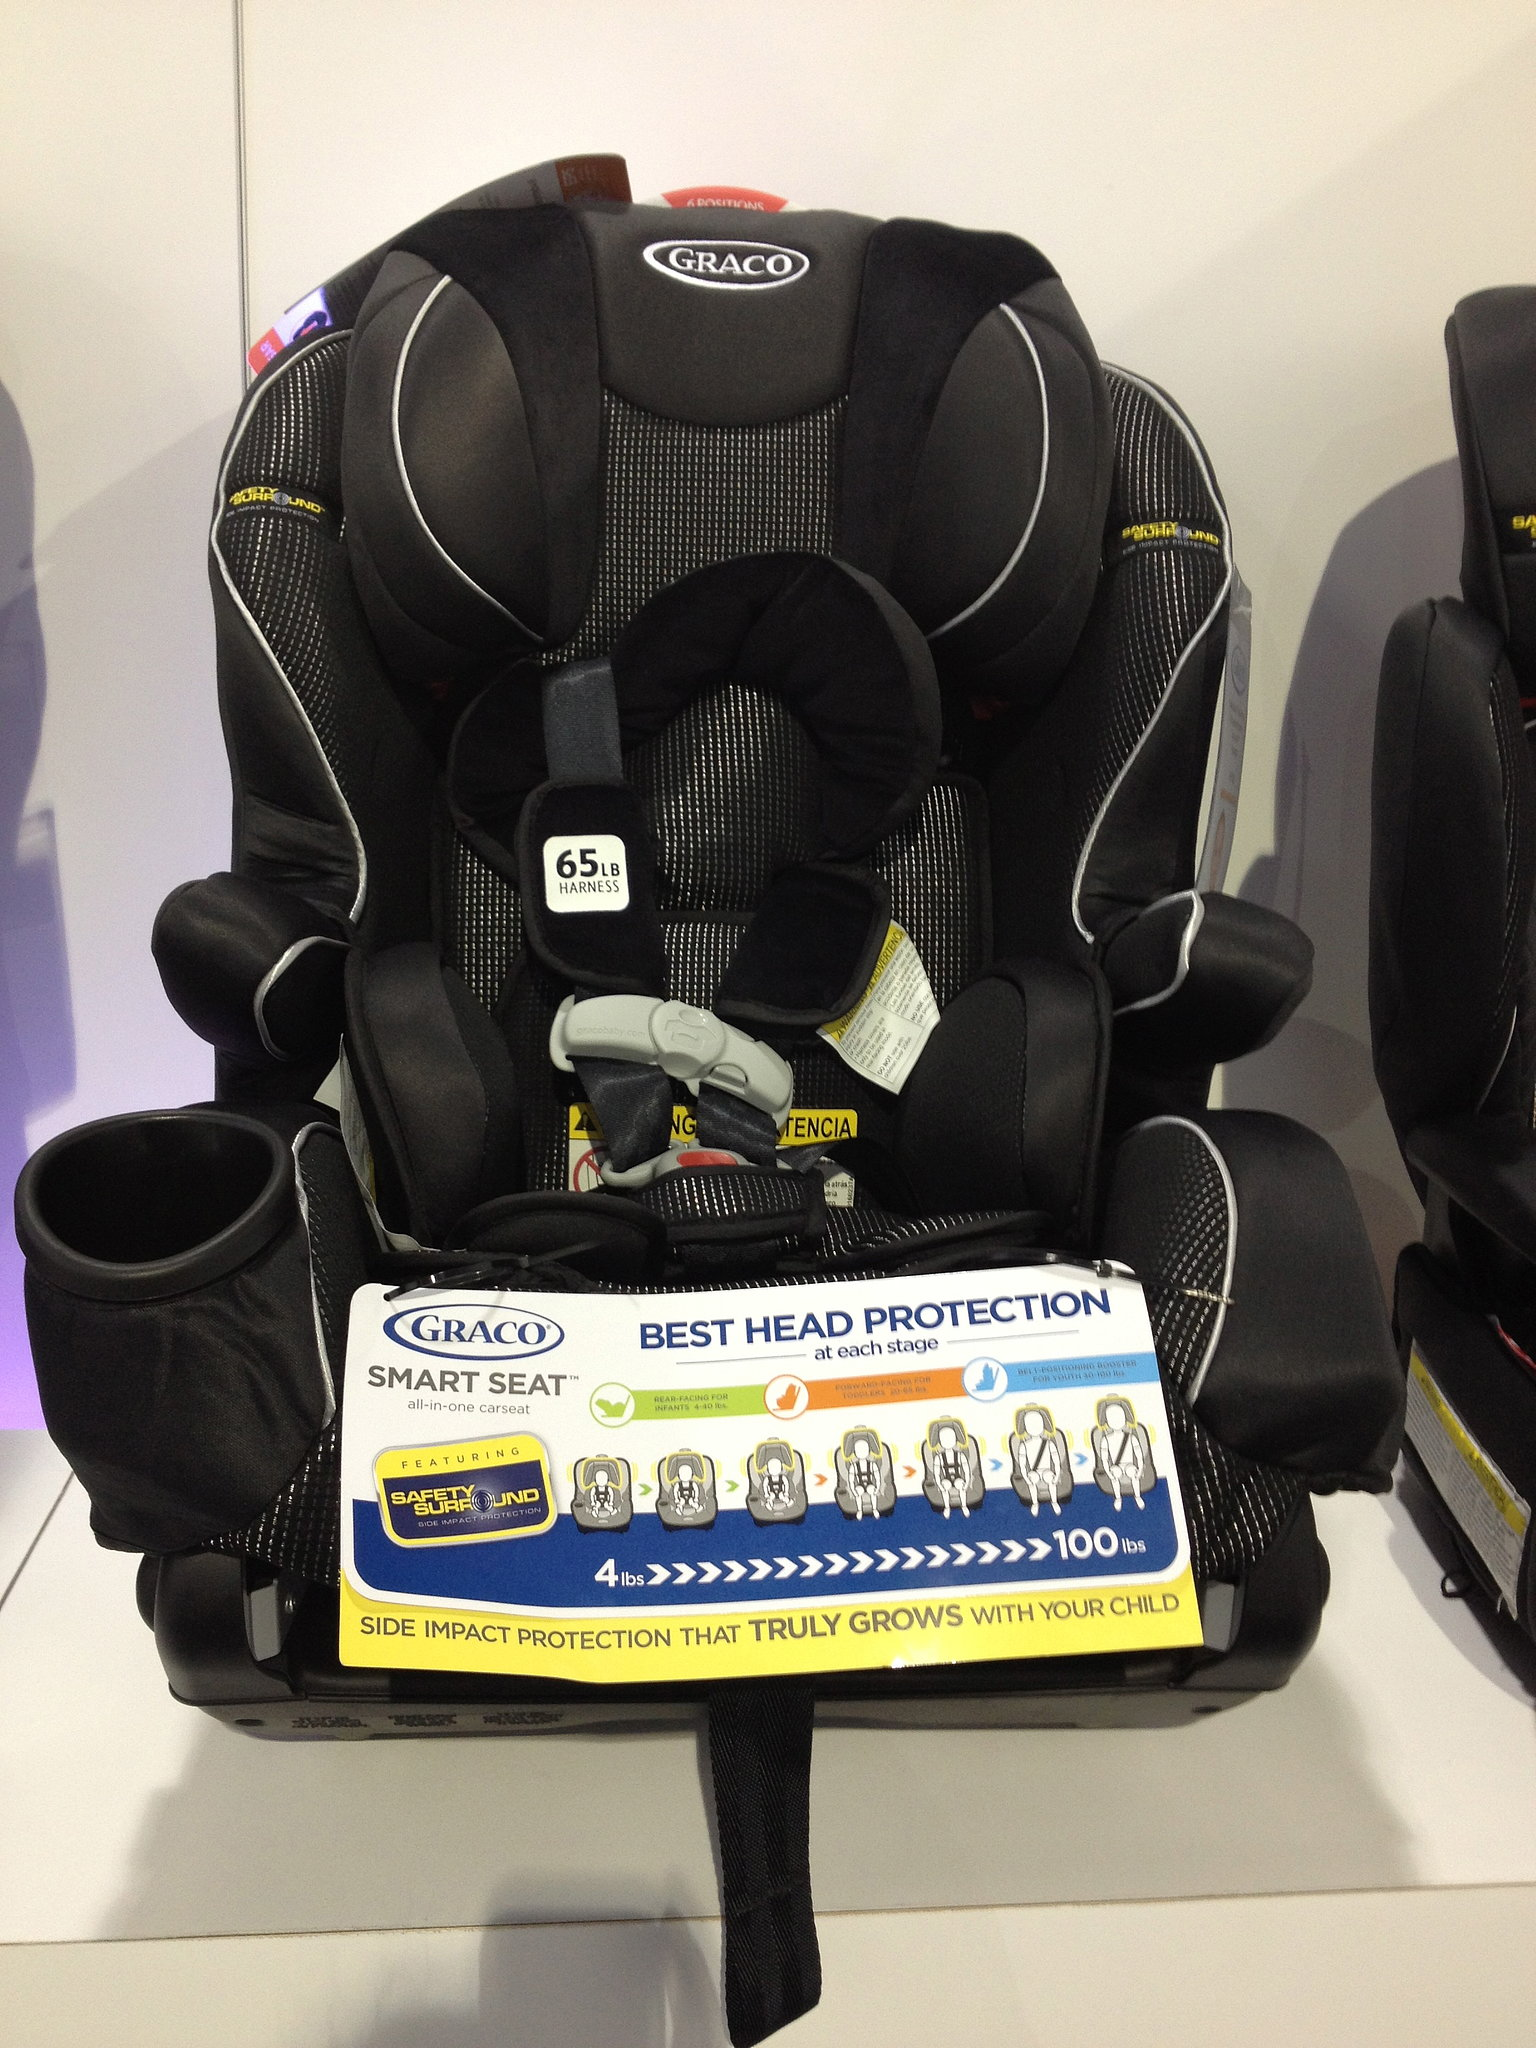 graco 39 s smart seat featuring safety surround is truly an all in one 133 baby products not even. Black Bedroom Furniture Sets. Home Design Ideas